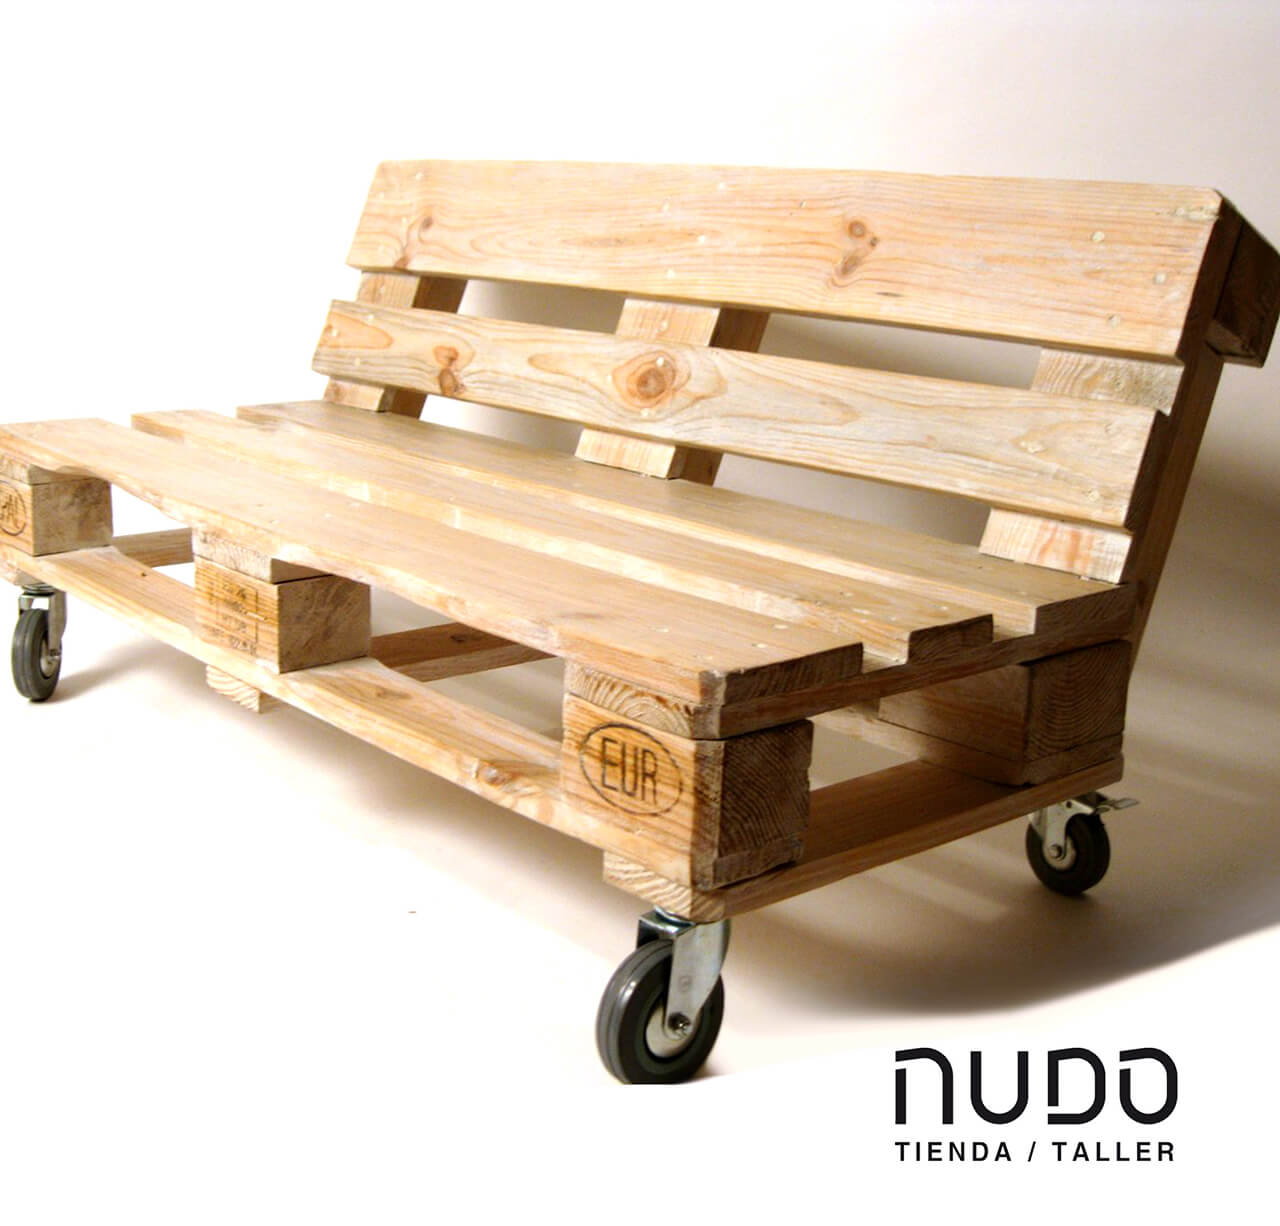 Pallet furniture images galleries for Pallet furniture designs